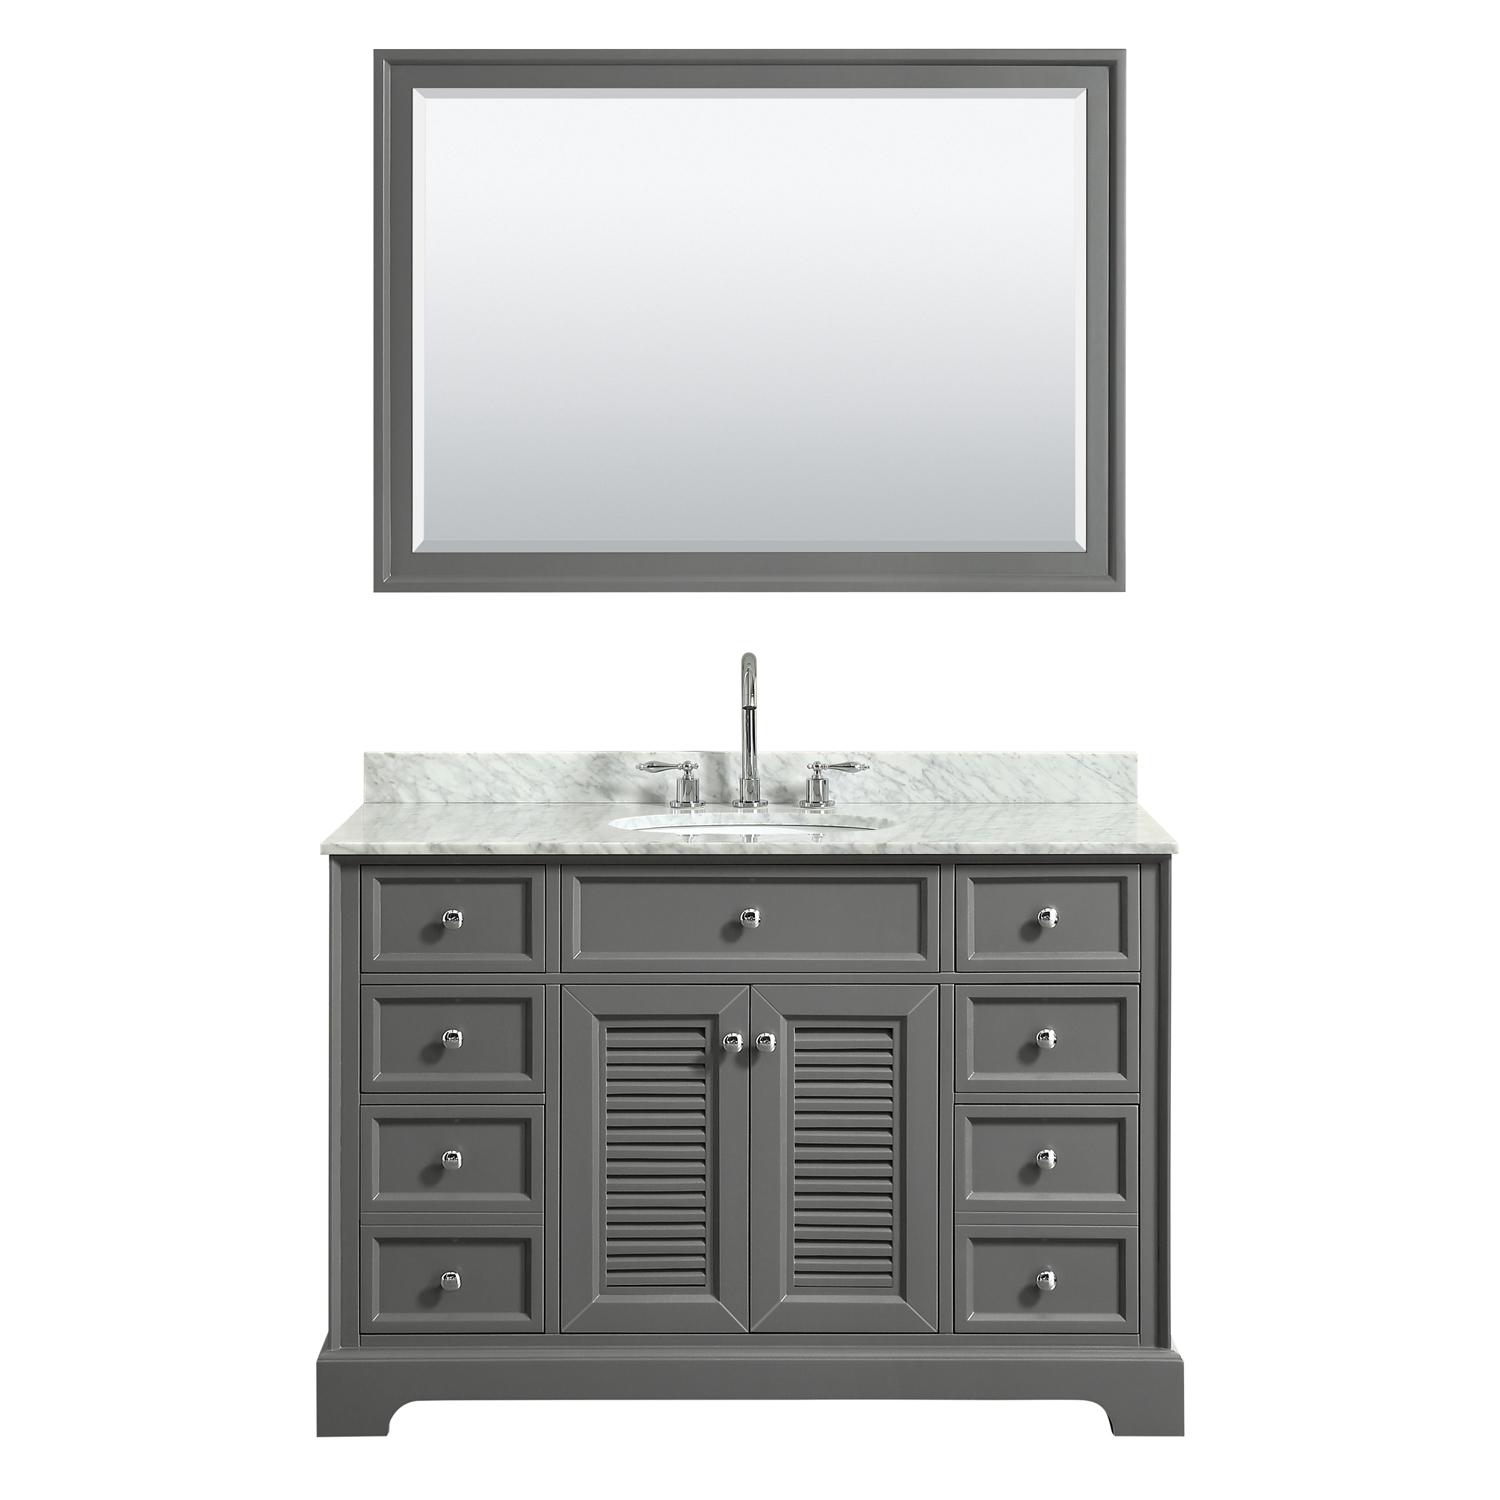 "48"" Single Bathroom Vanity in White Carrara Marble Countertop with Undermount Sink, Medicine Cabinet, Mirror and Color Options"